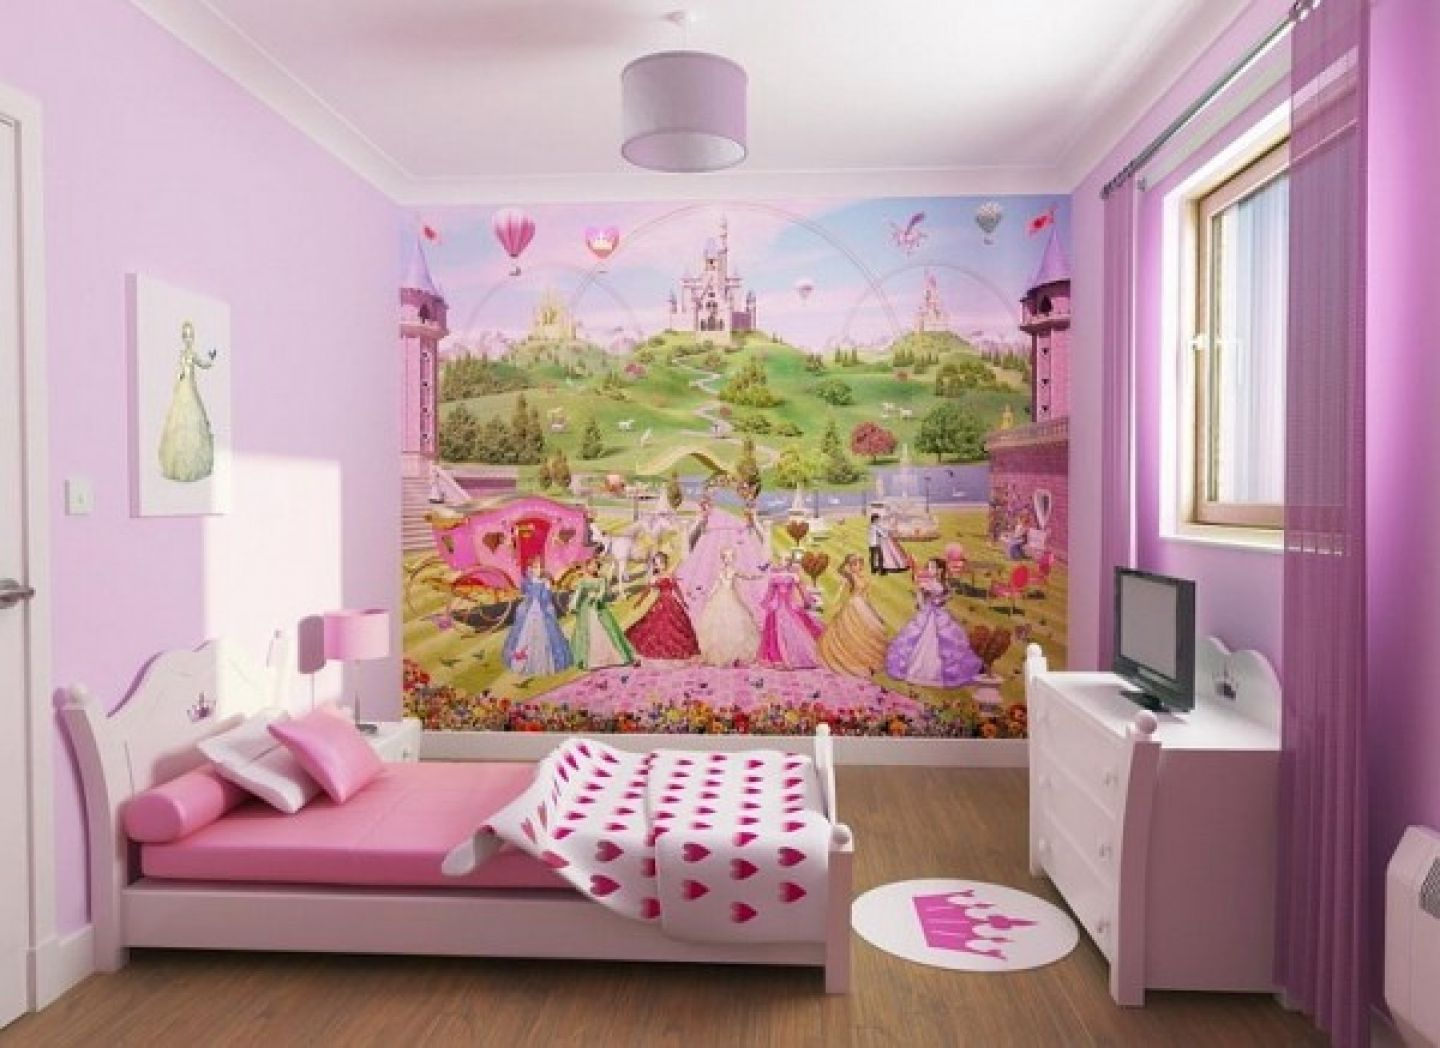 Girls Bedroom Style - Girl bedroom decor ideas